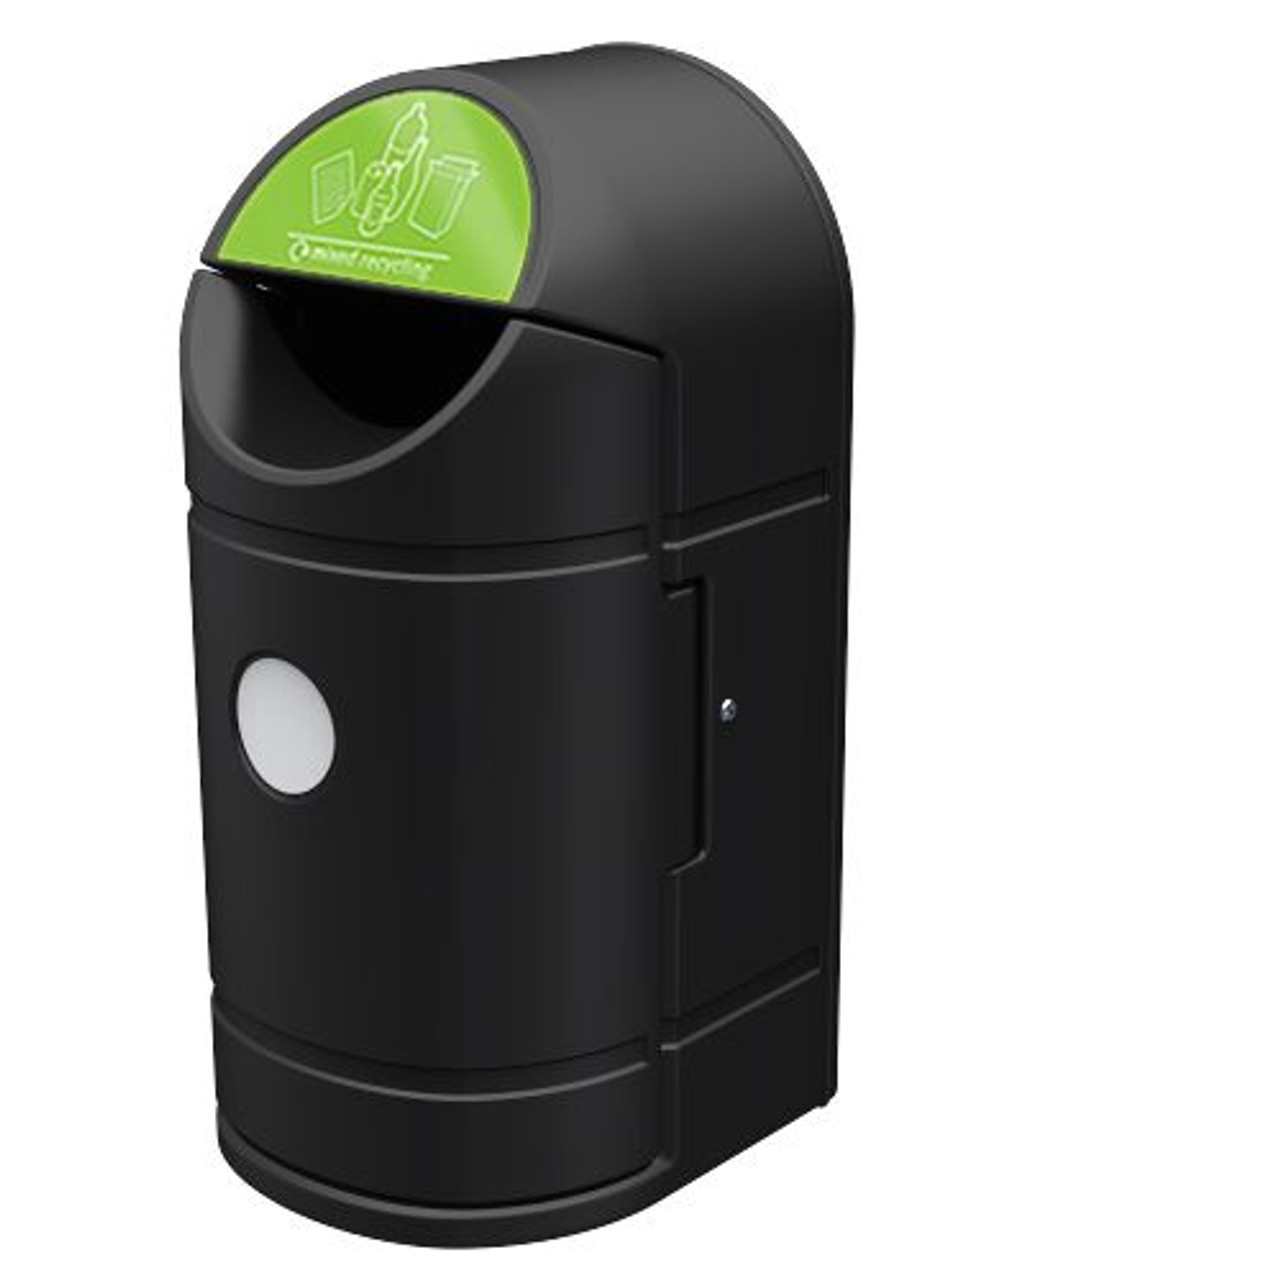 Eximo 90 litre  outdoor waste recycling litter bin